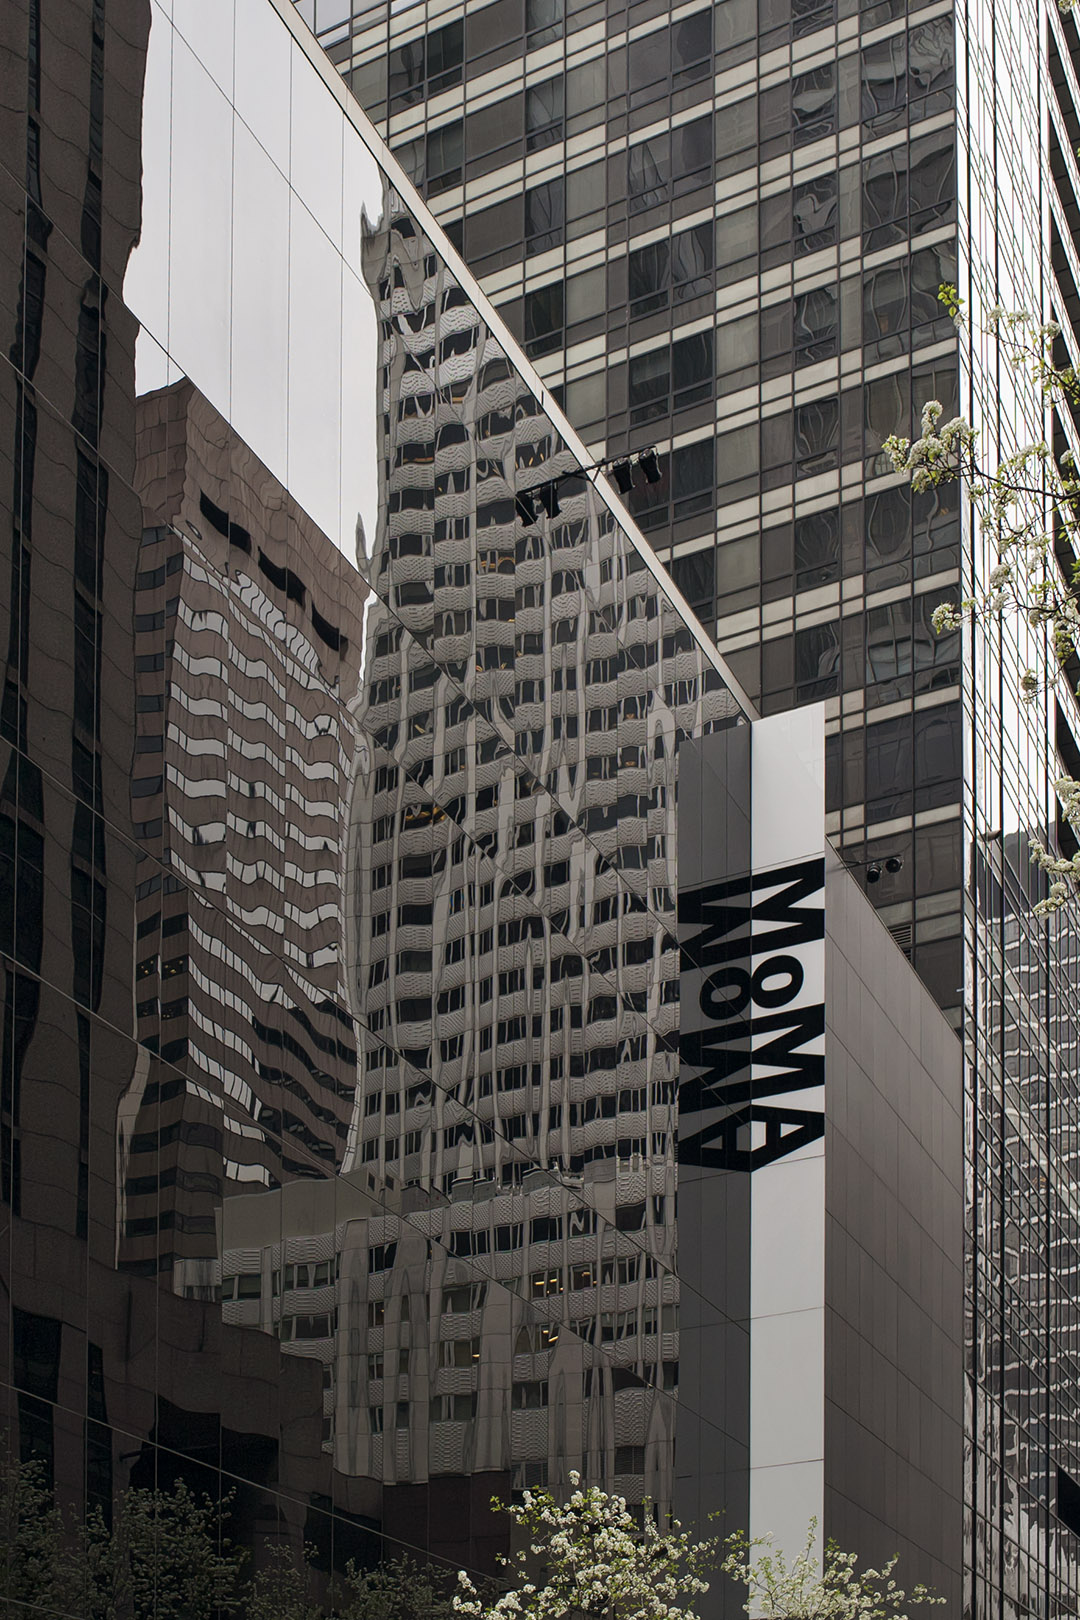 _nf - New York MoMA exterior